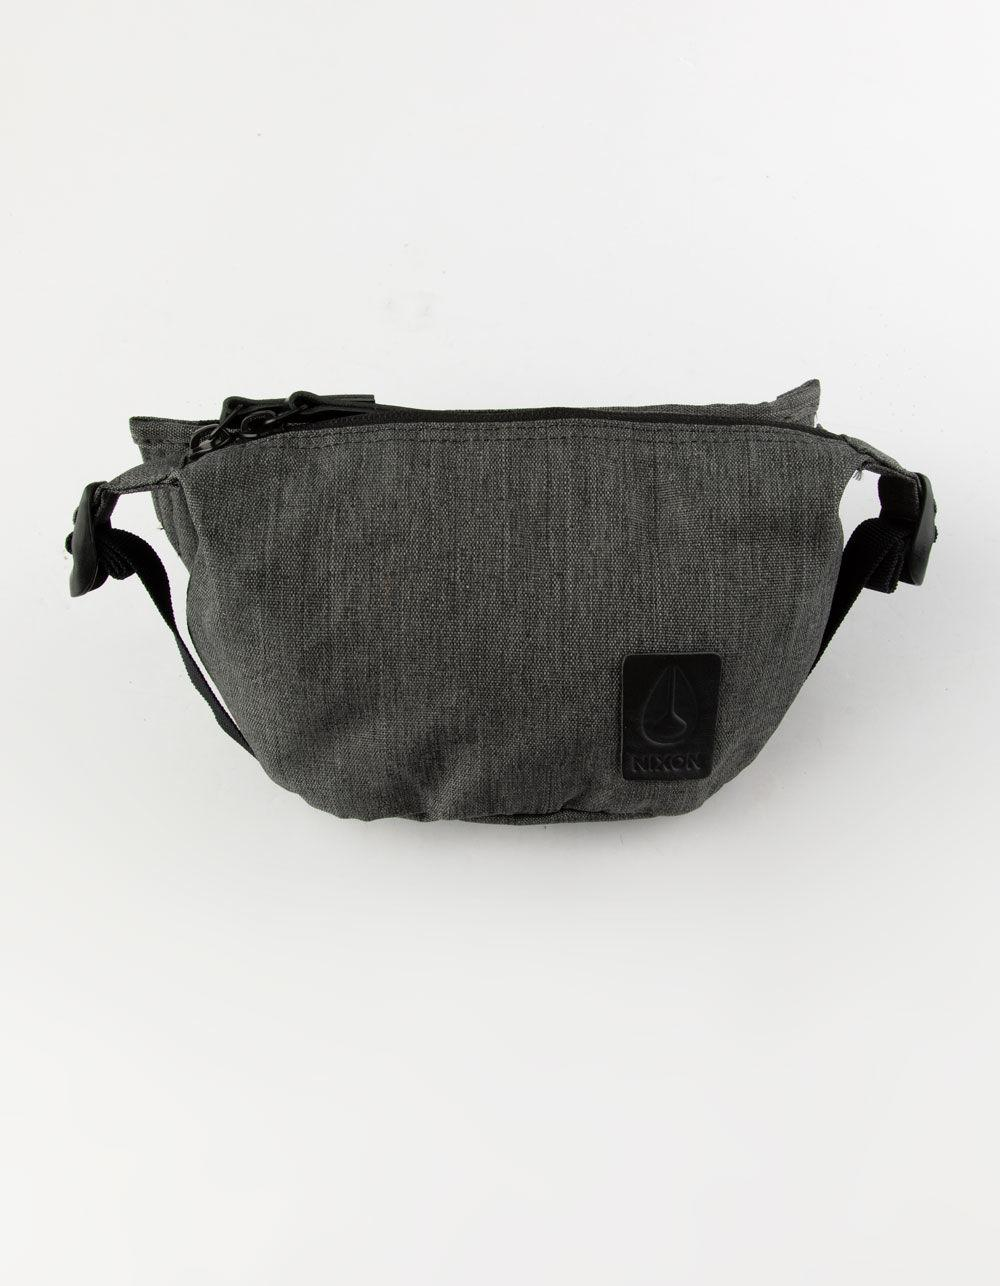 d14217b270 Lyst - Nixon Trestles Charcoal Heather Fanny Pack in Gray for Men